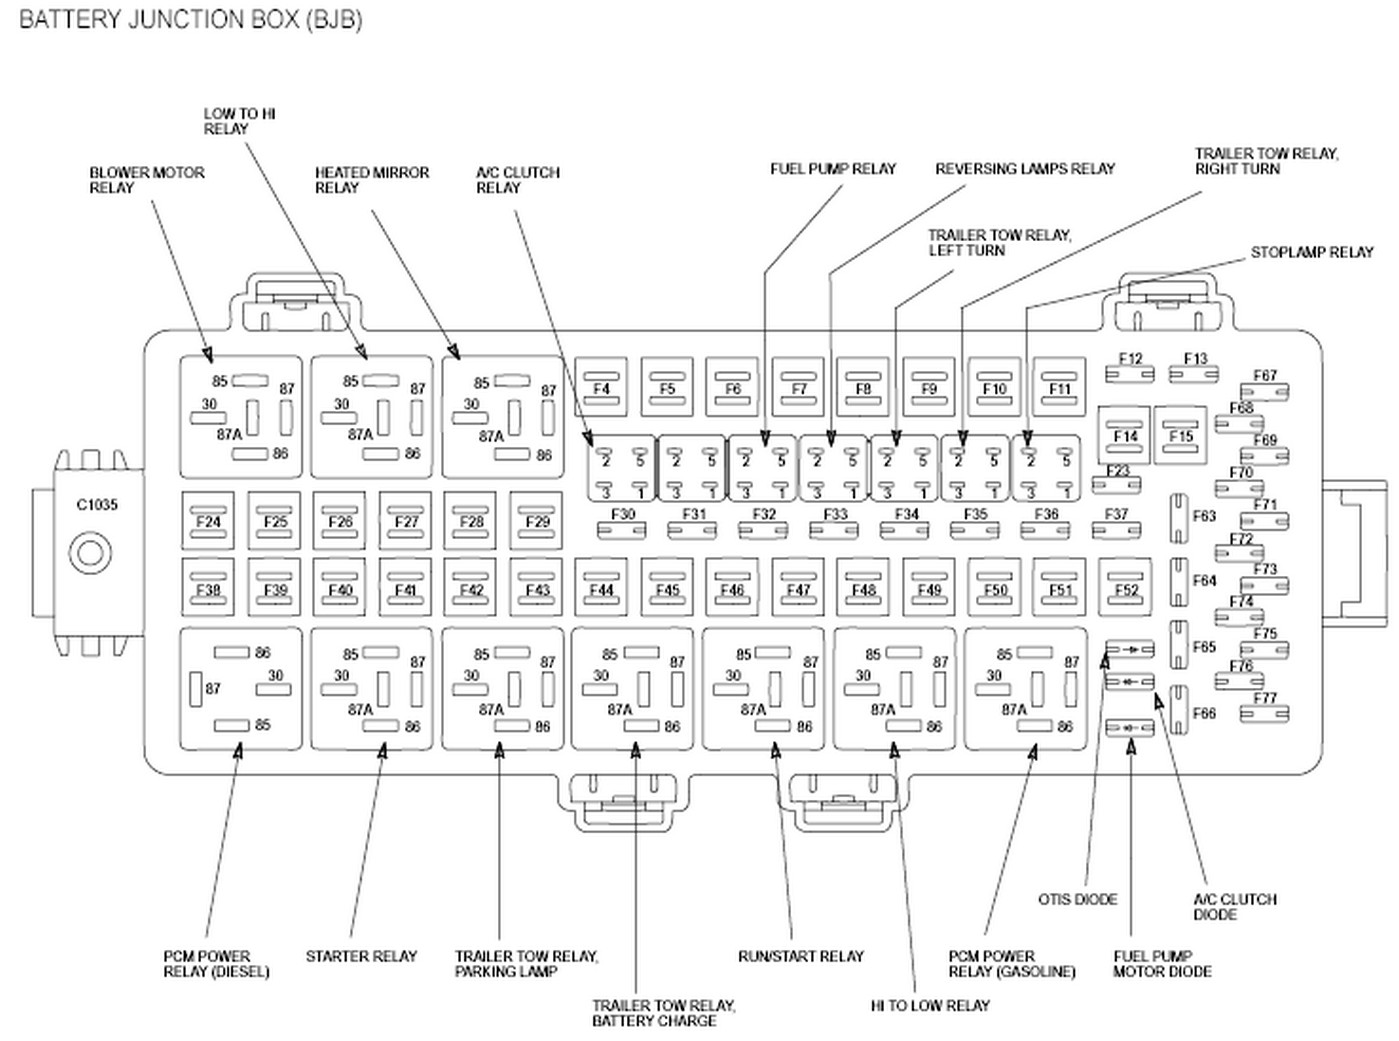 2011 ford f250 fuse box diagram Zoinyhu 2012 f250 fuse box location 2009 ford fusion fuse box diagram 2003 ford focus se fuse box diagram at readyjetset.co